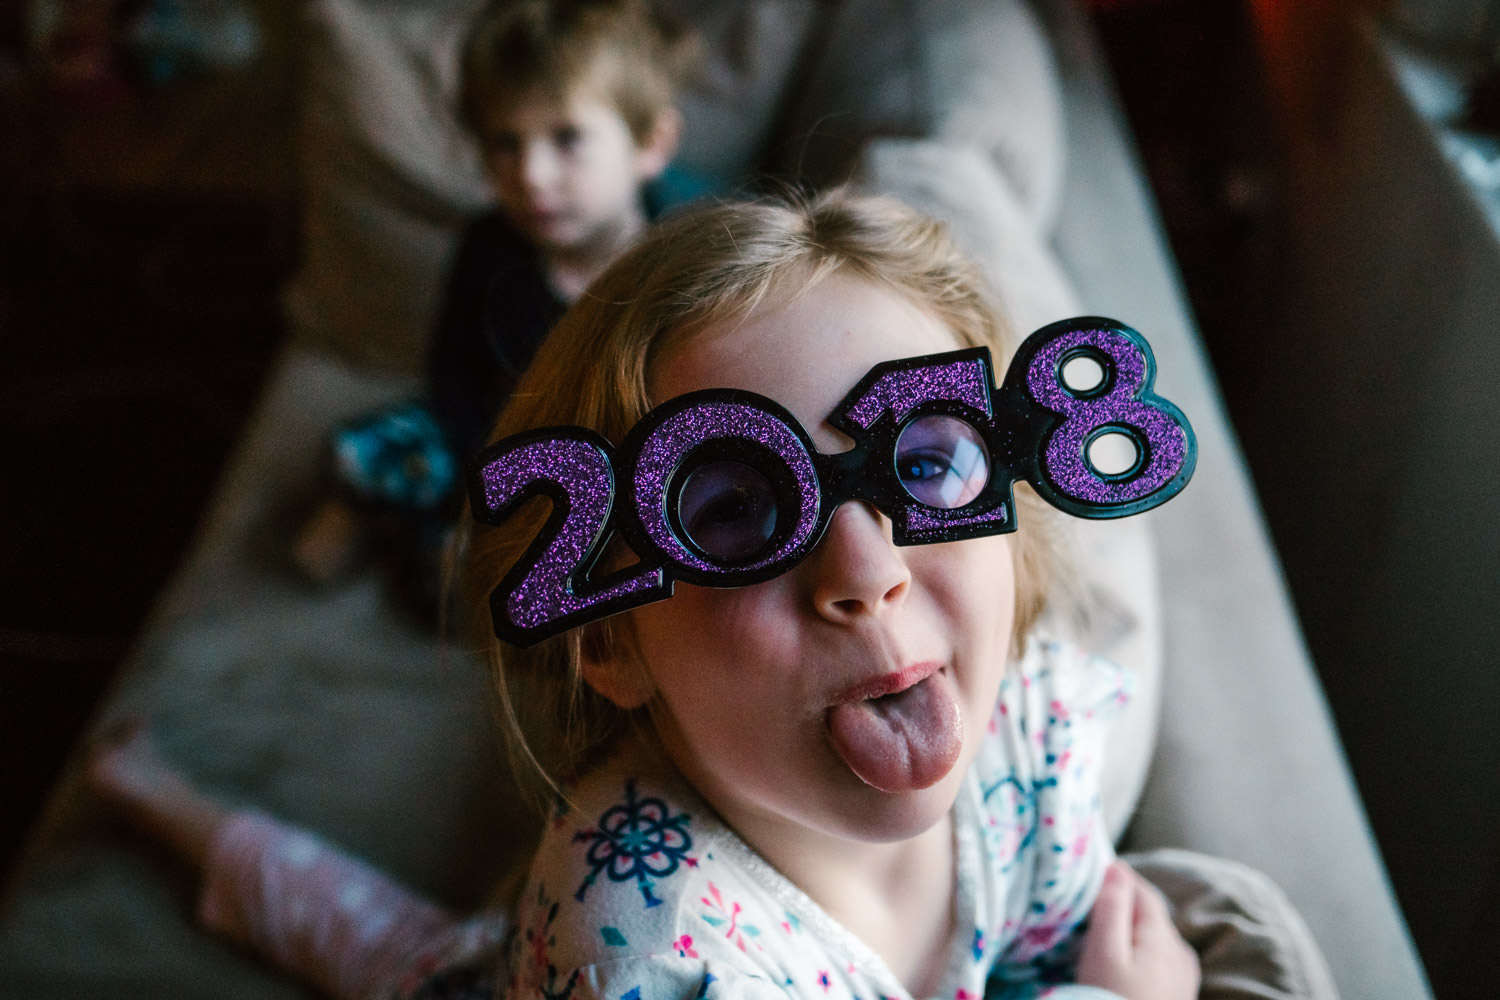 A little girl wearing 2018 glasses sticks her tongue out.